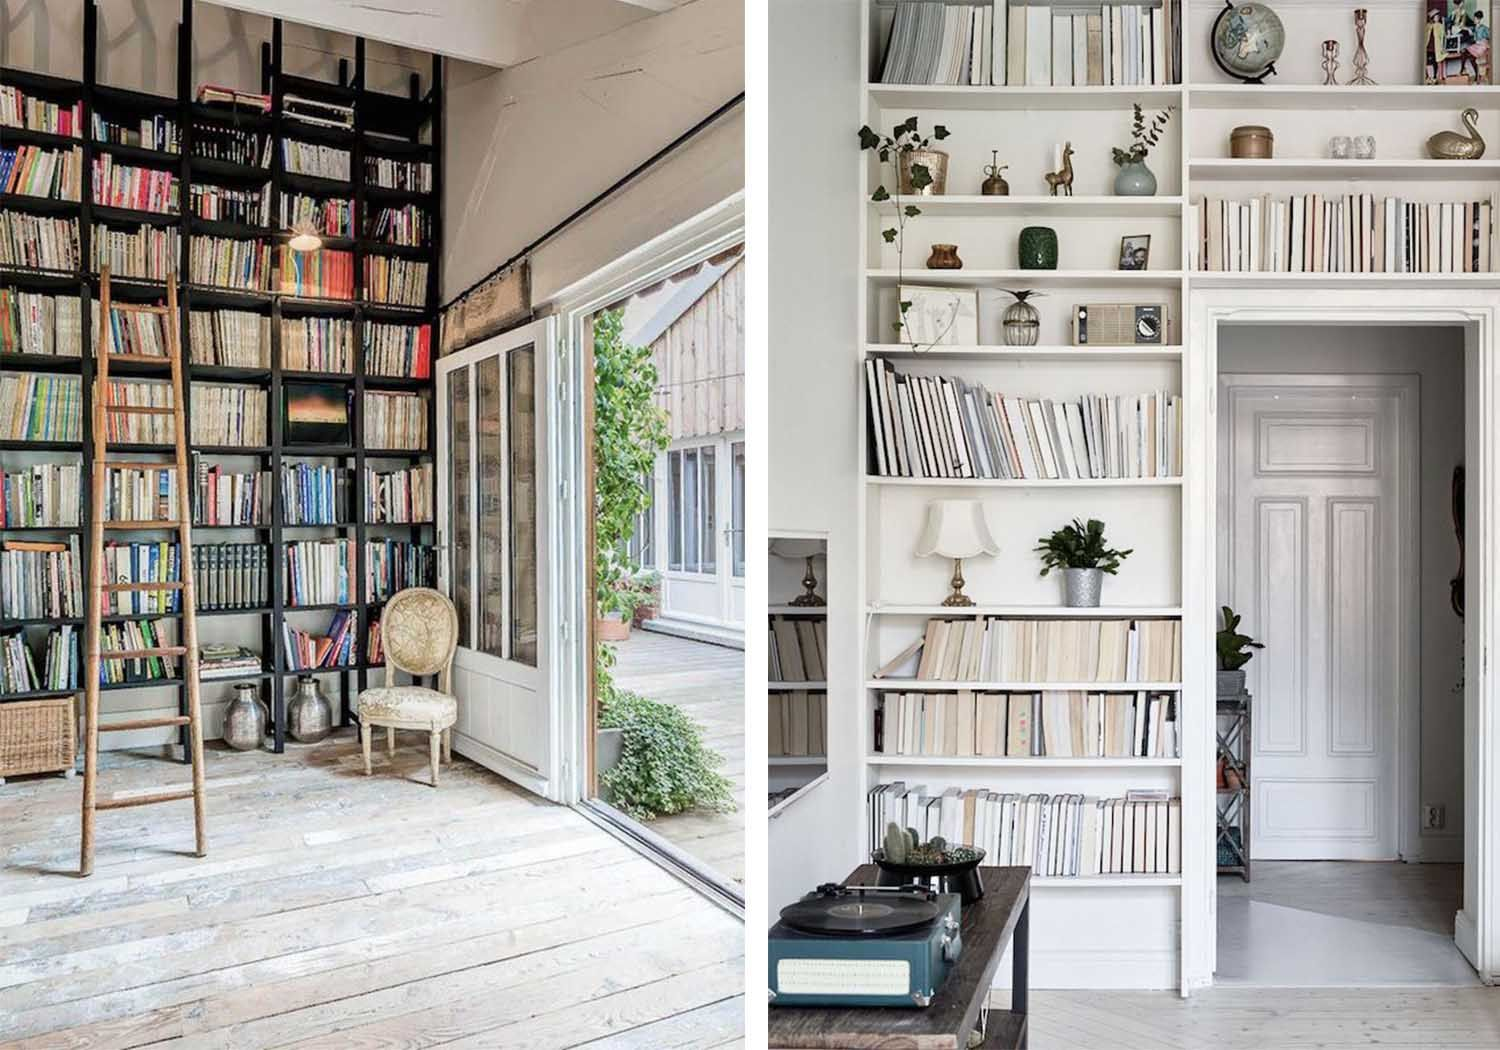 books ever having to ve built floor collection img ceiling room ikea them surznick beautiful ago a dreamed of billy in the house bookcases amassing bookshelves common years large i since started few we